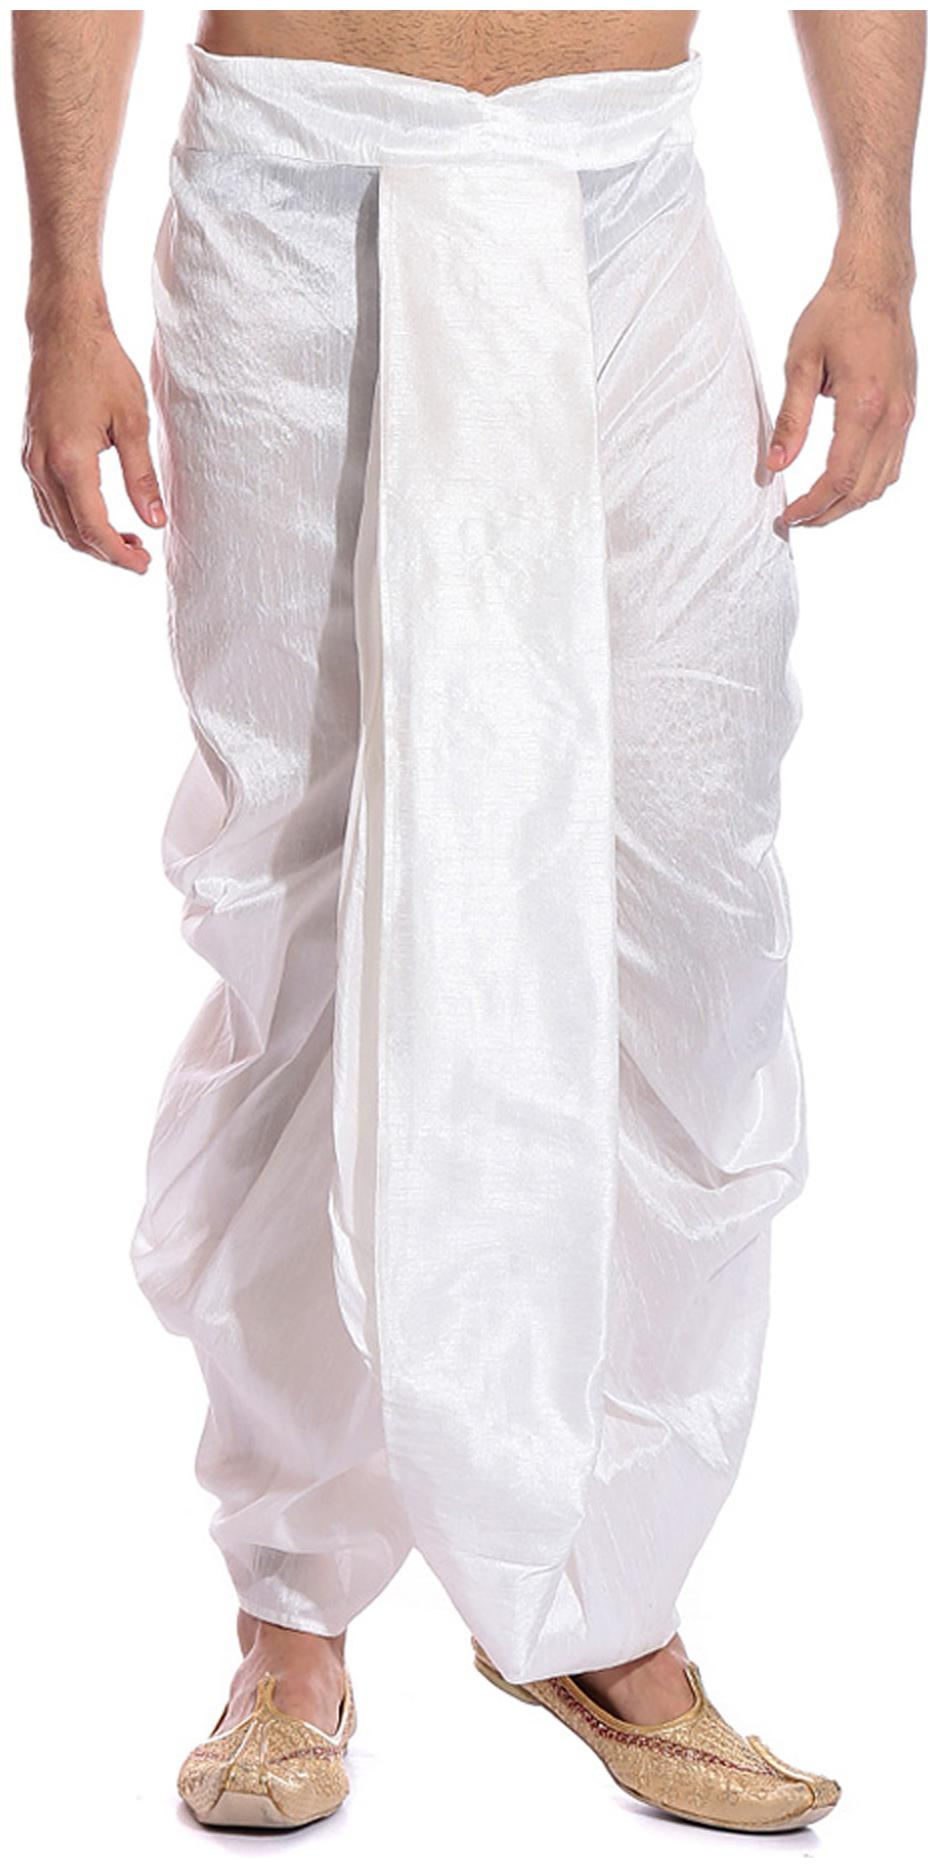 https://assetscdn1.paytm.com/images/catalog/product/A/AP/APPTAG-7-WHITE-TAG-249277311EBFB/1562751740236_3.jpg